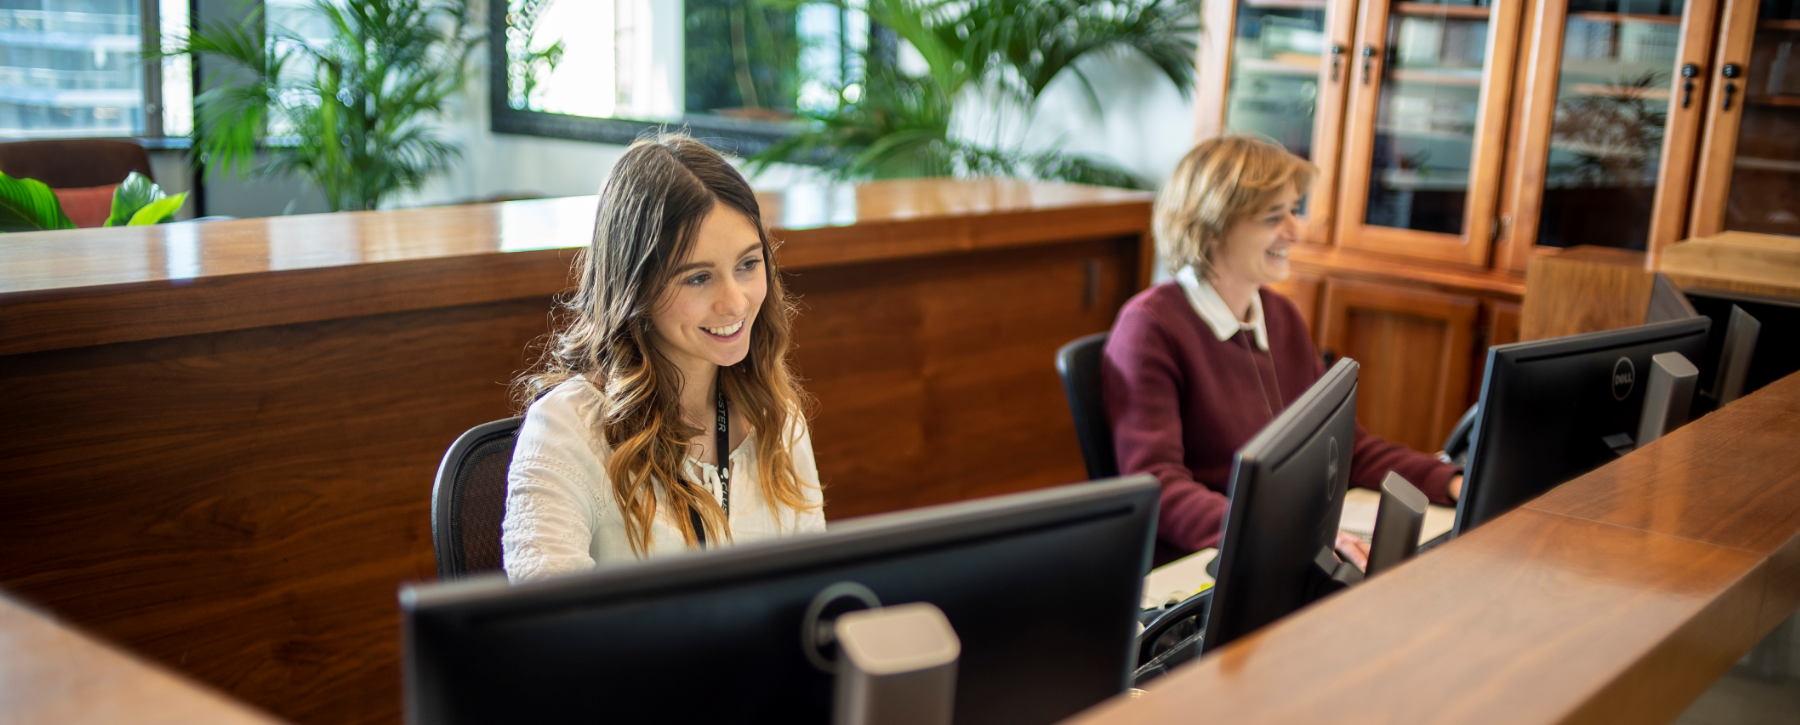 Two smiling receptionists sat behind the front desk